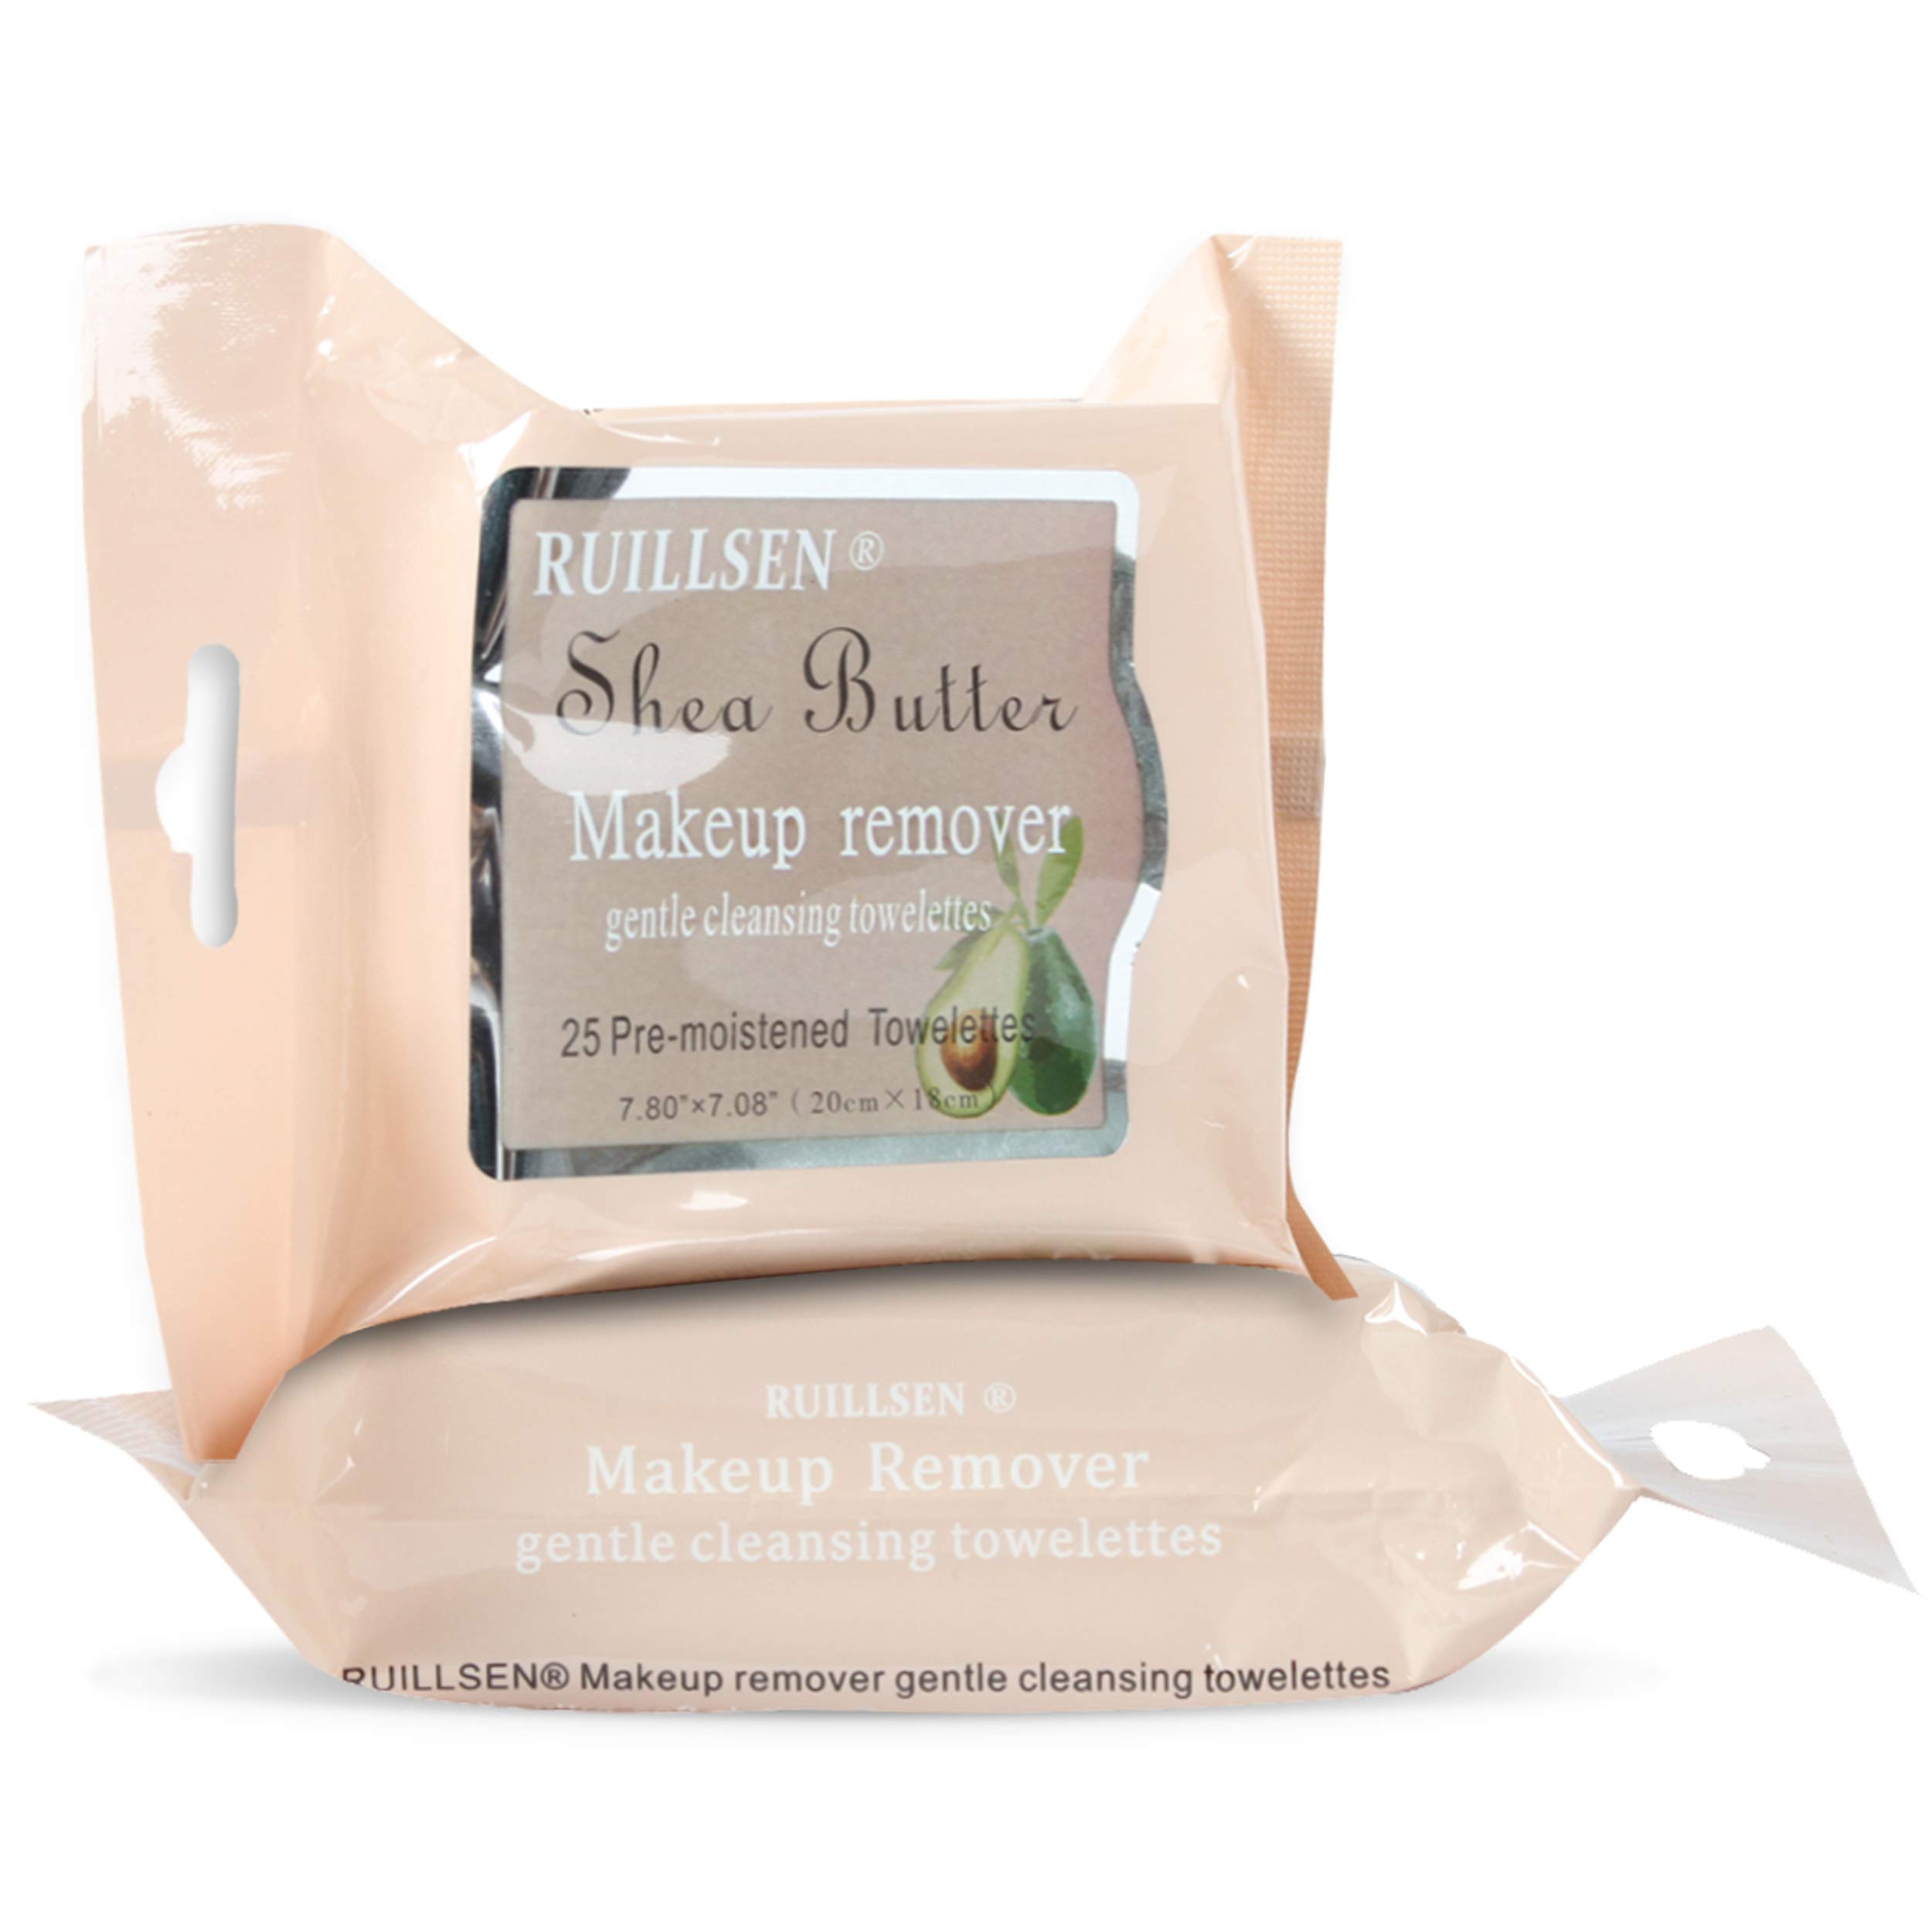 RUILLSEN Makeup Removing Wipes - Gift for Mom Facial & Eye Makeup Remover Wipes Cleansing Towelettes Daily Face Wipes to Remove Dirt, Oil, Makeup & Waterproof Mascara(Shea Butter Flavored,25 Ct,2 Pks)